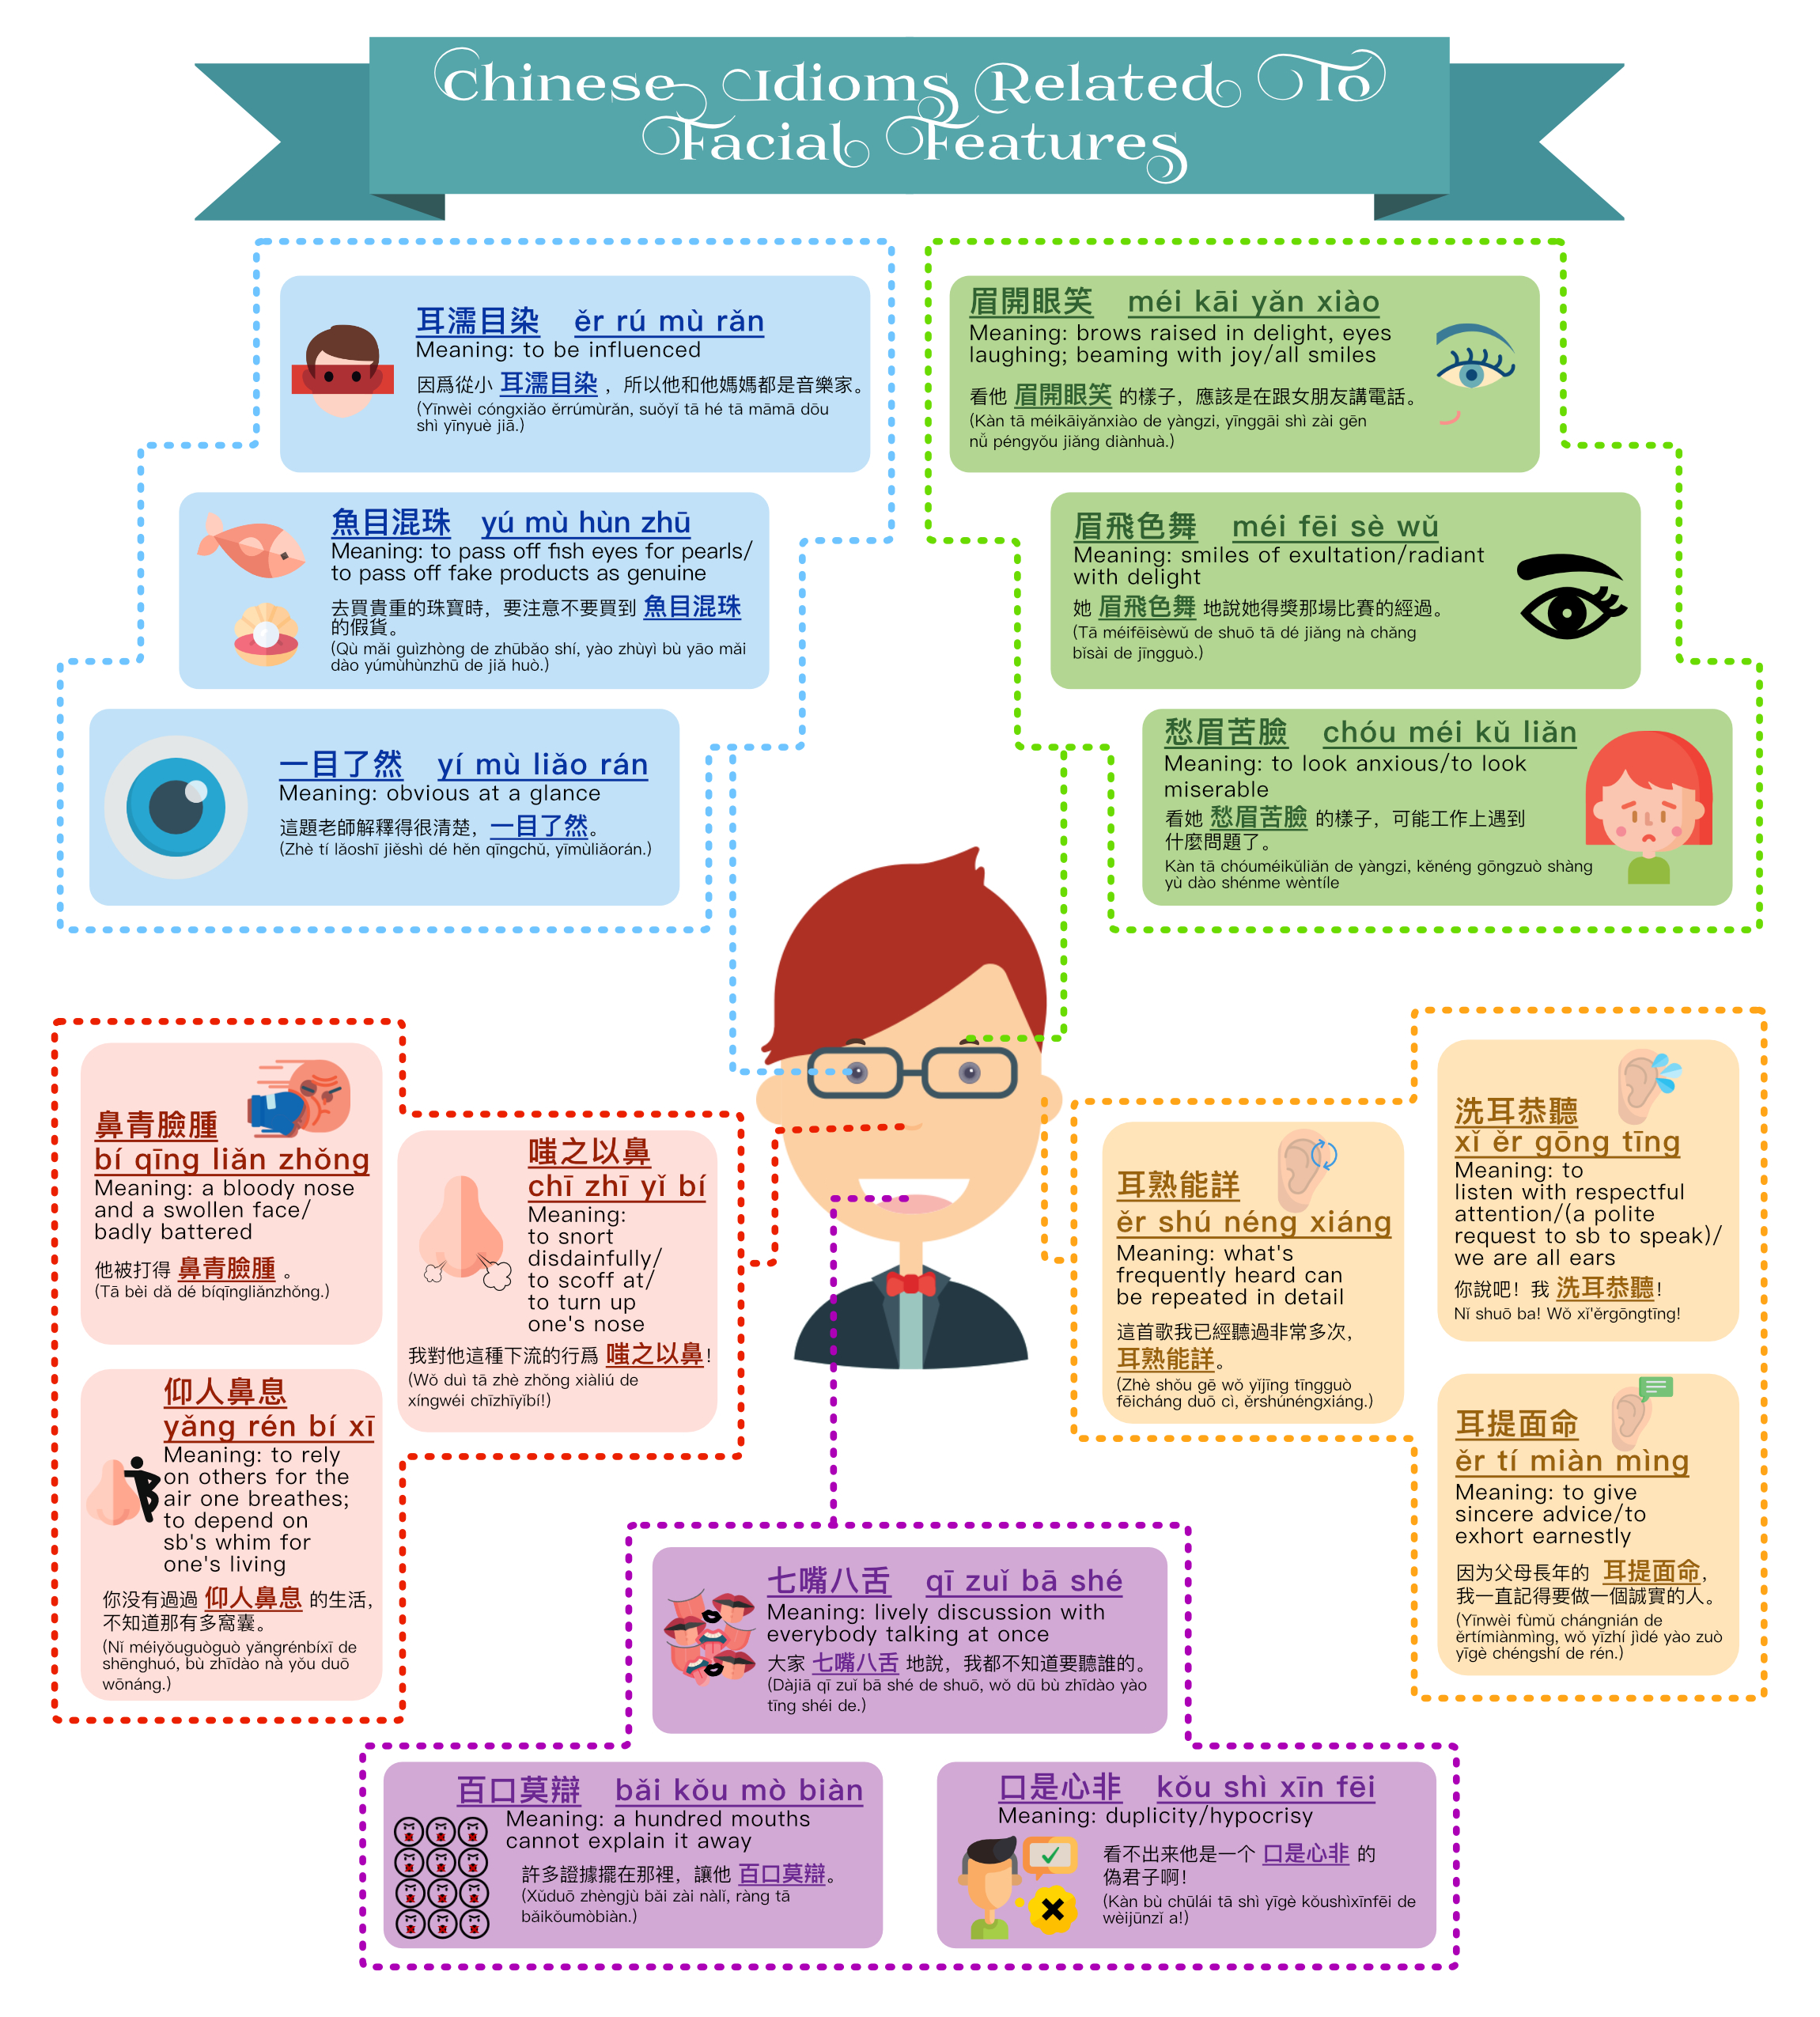 Facial Features Related Chinese Idioms TraditionalChinese Version